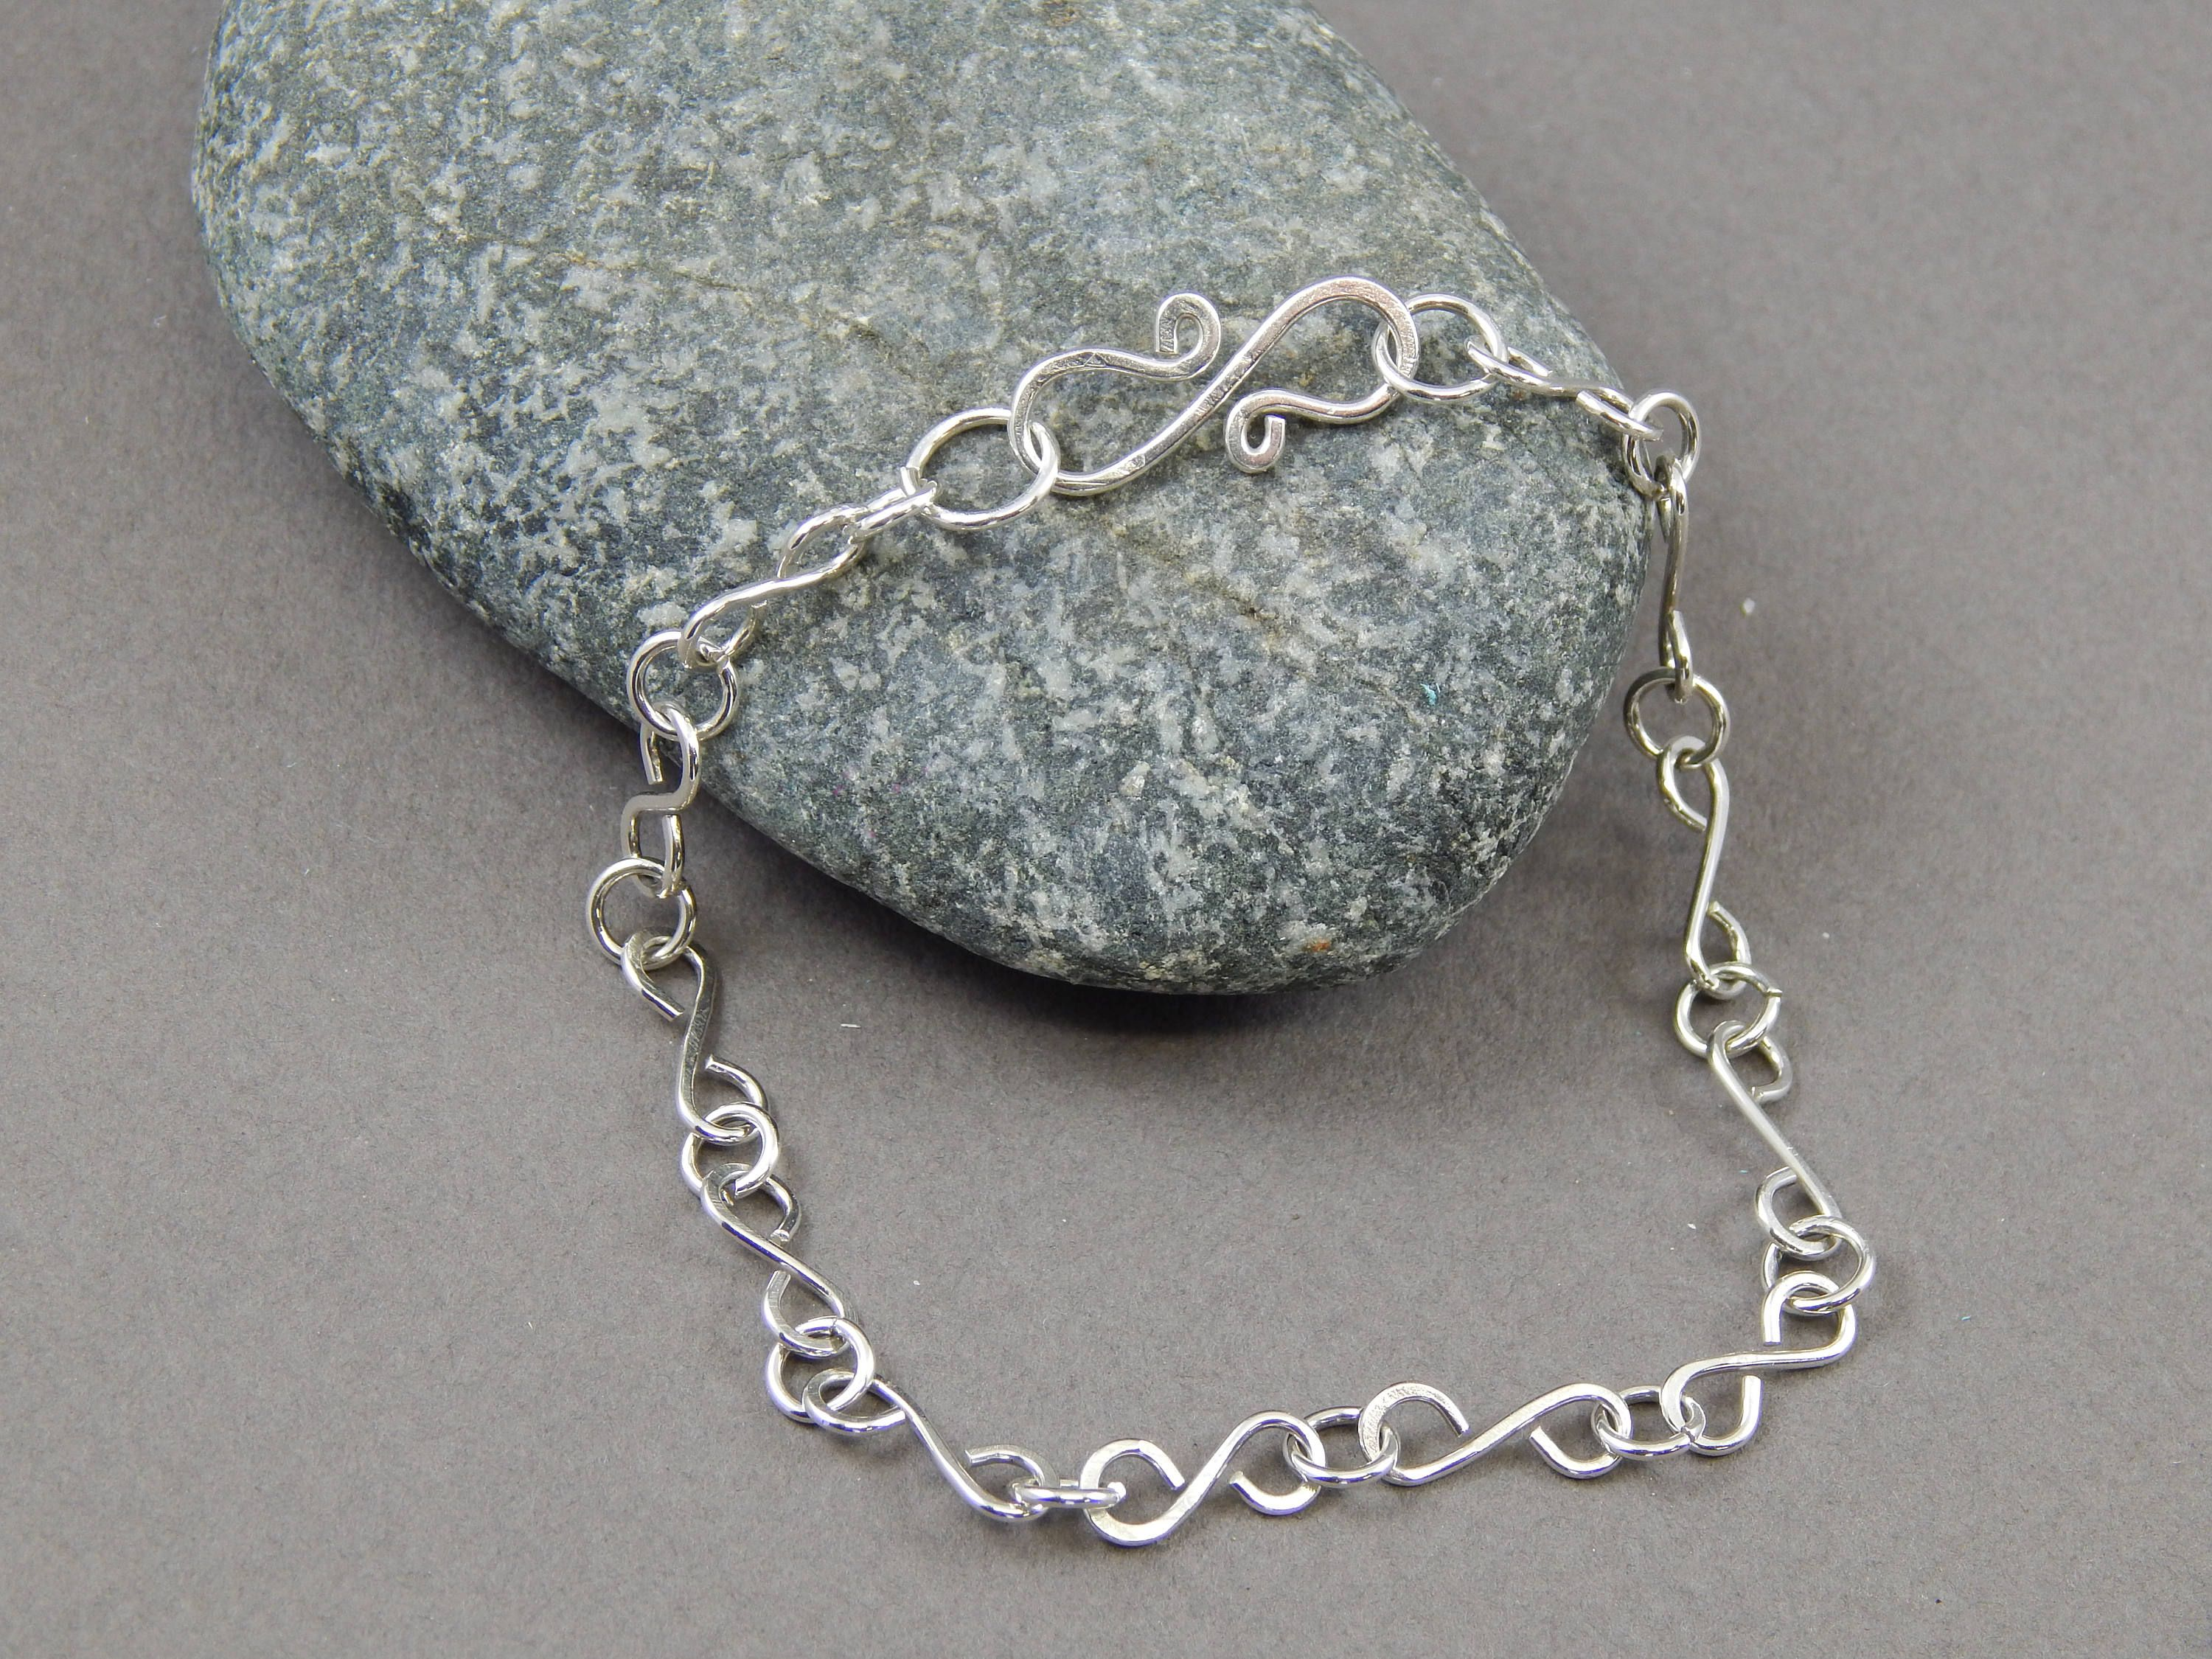 by bubble s chain sterling pin on bracelet chains link earthartisanjewelry etsy silver